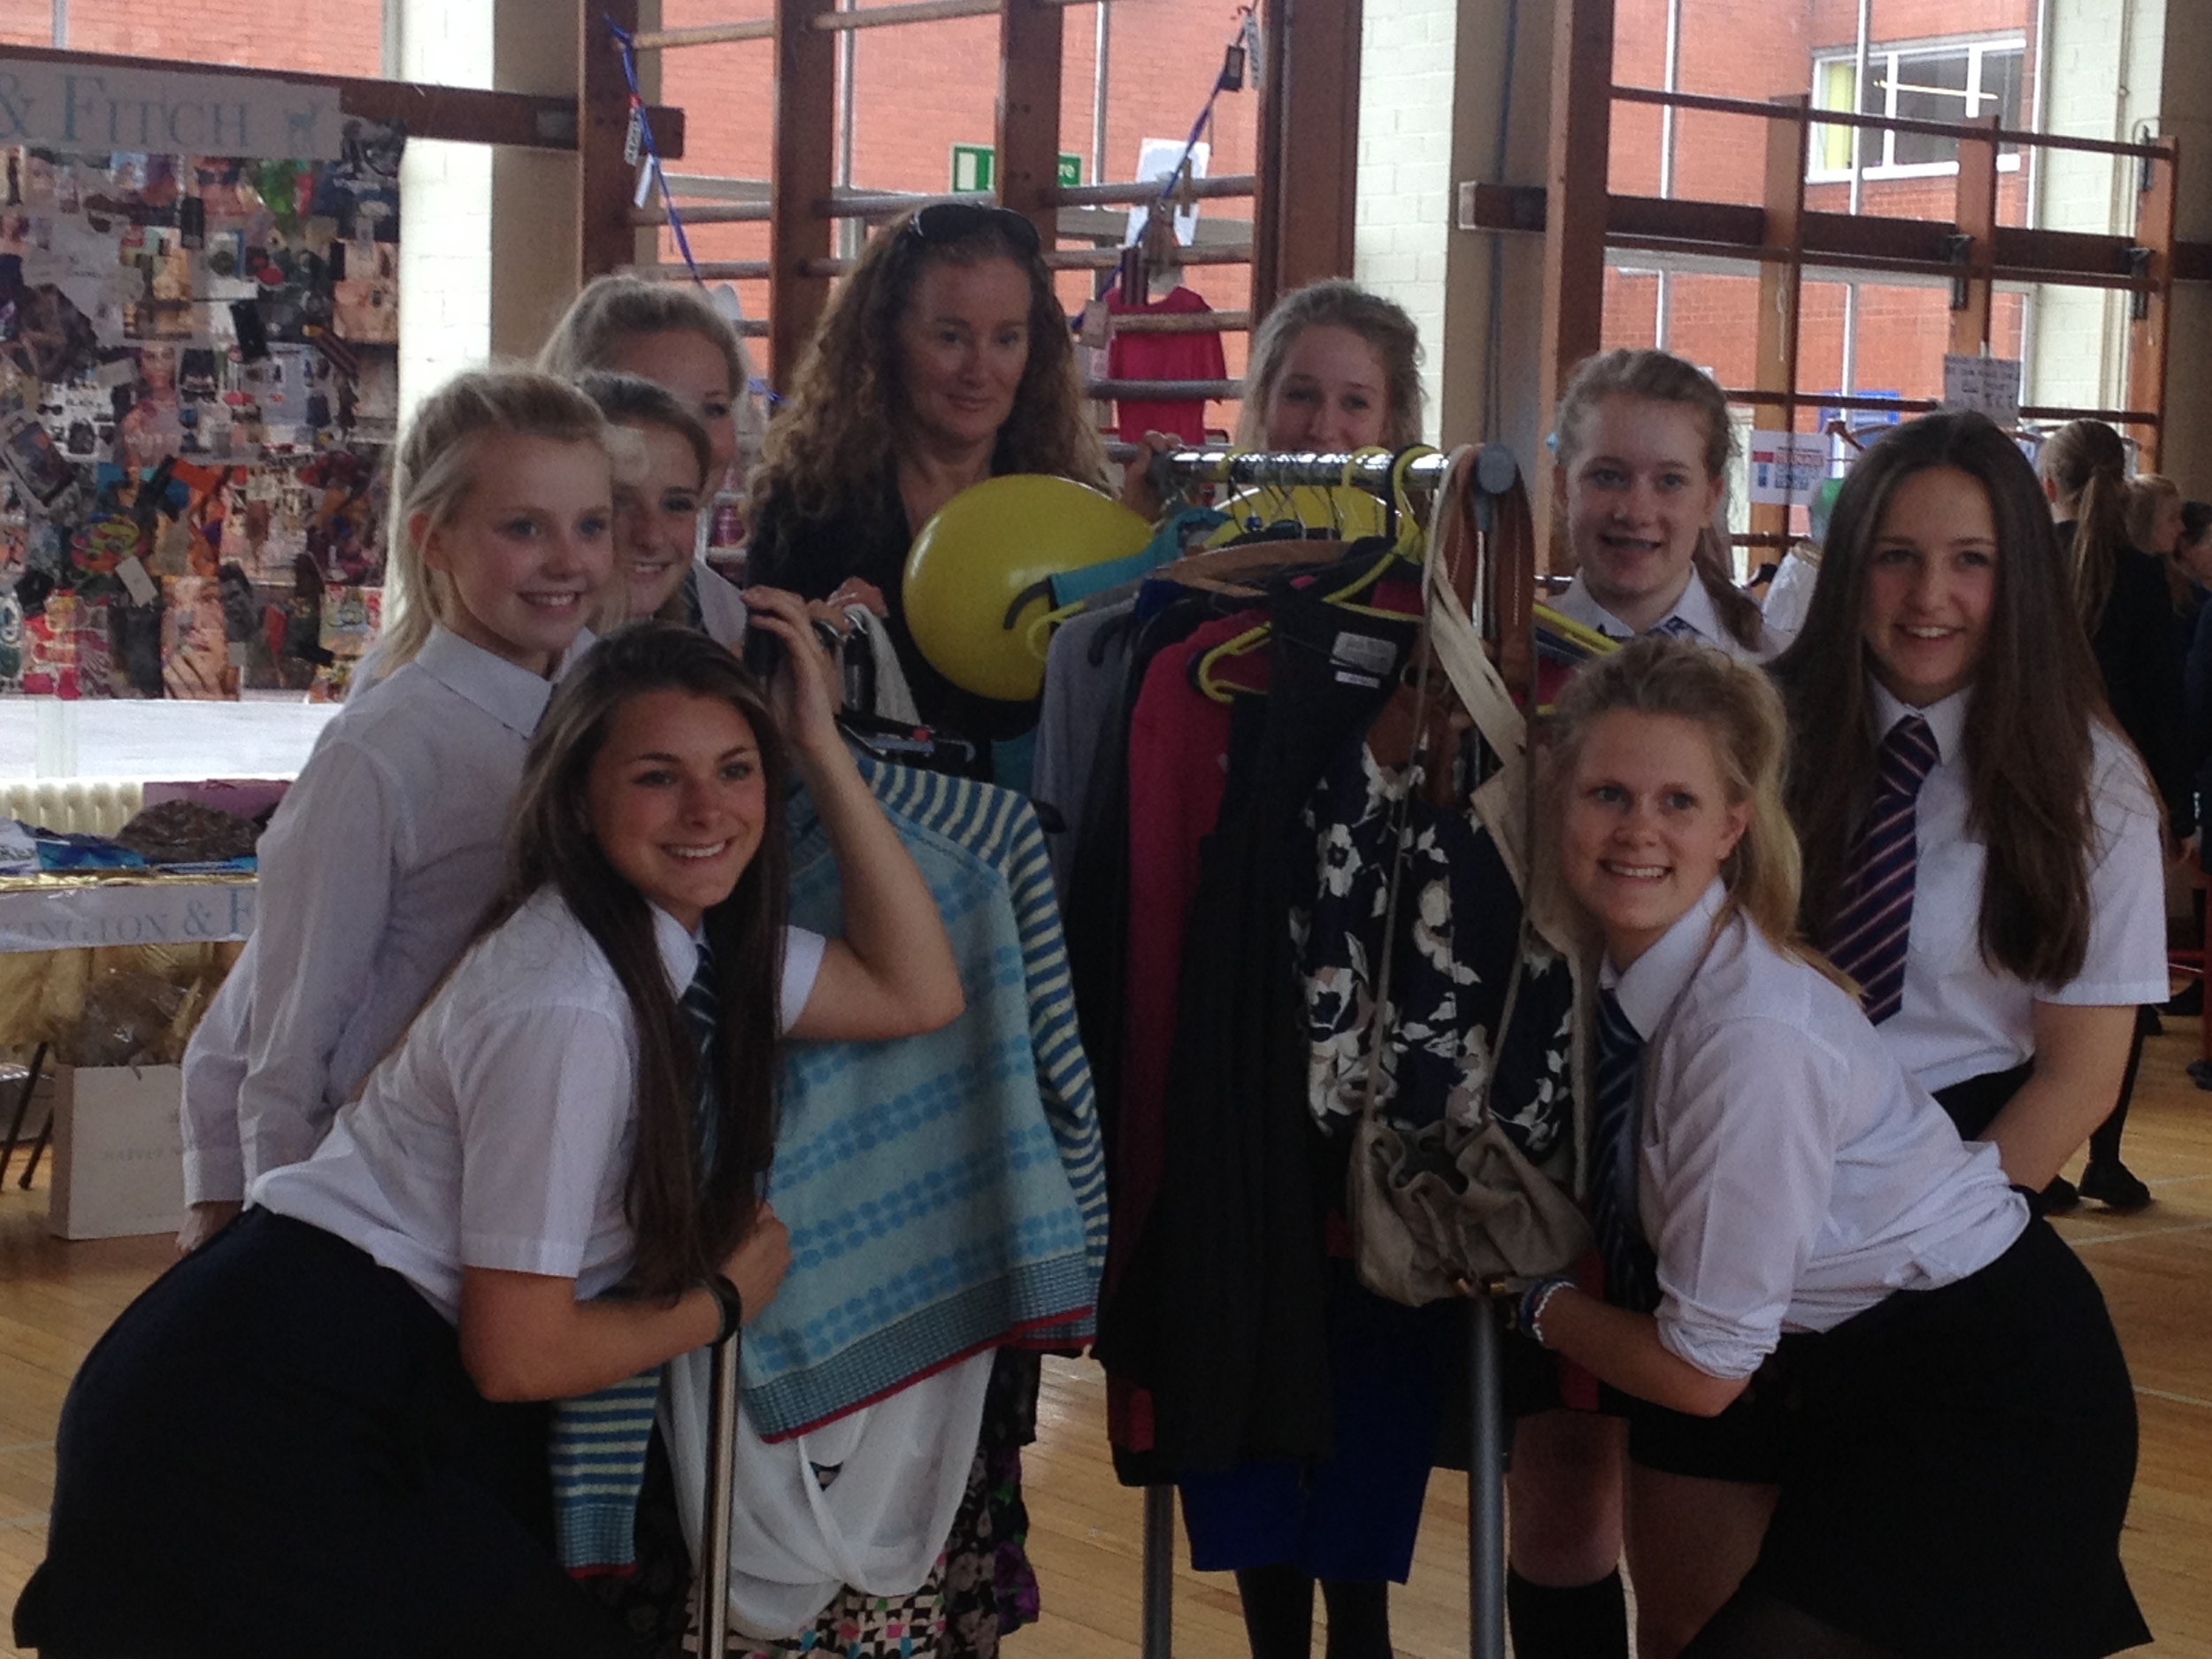 House Captains from Kings School Macclesfield with Manchester Designer Vicky Martin